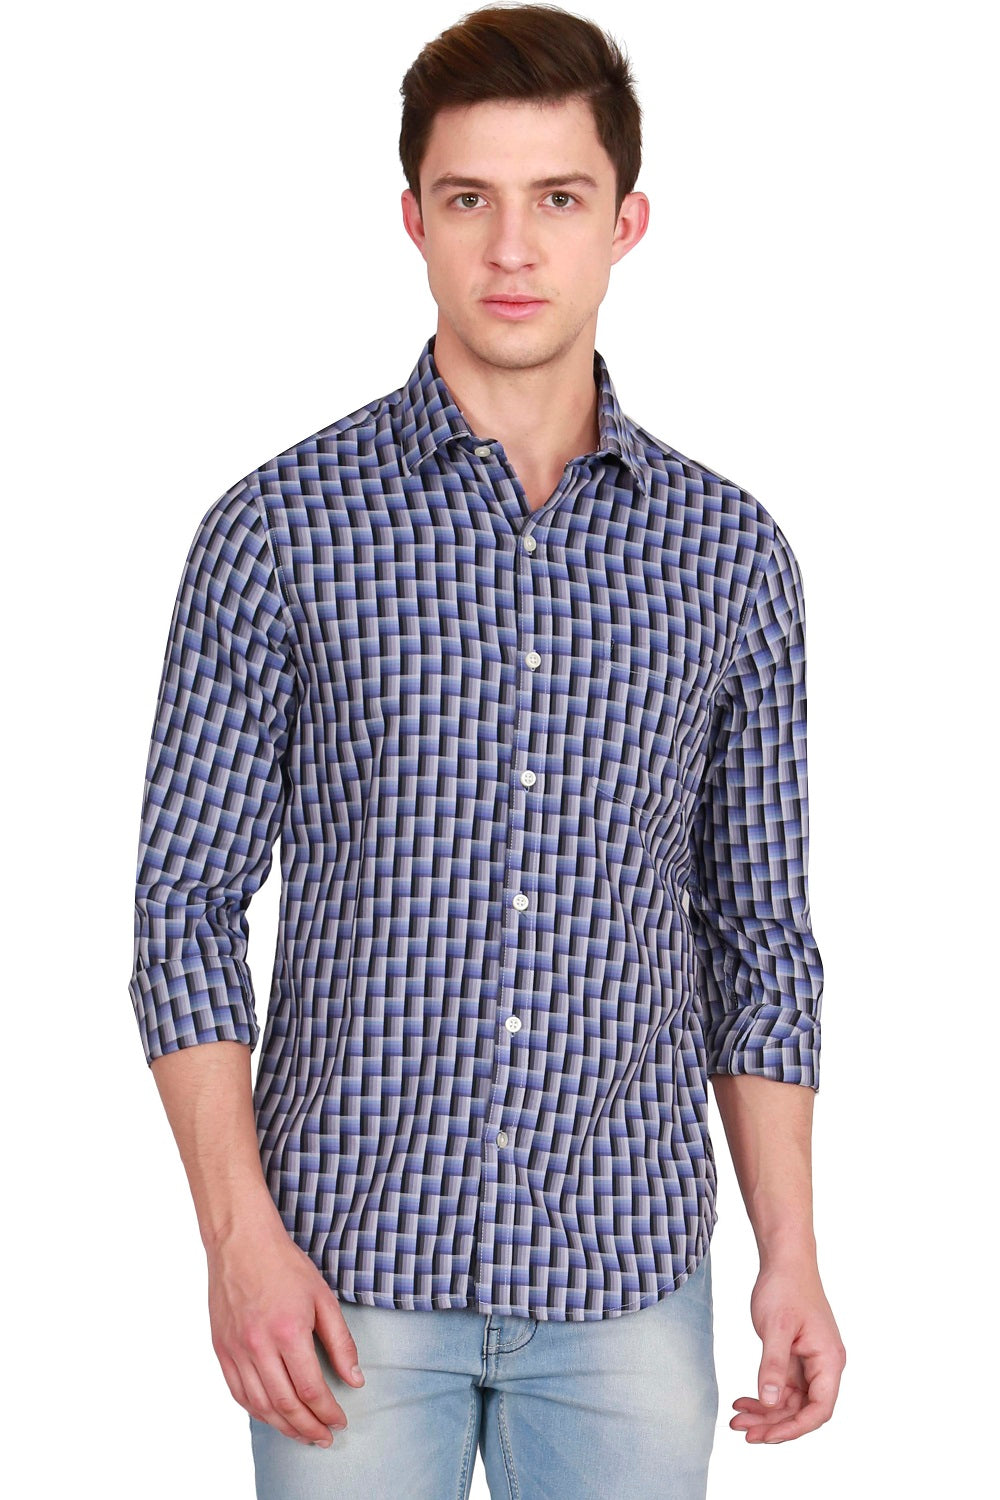 IMYOUNG Blue and Black Slim Fit Casual Shirt